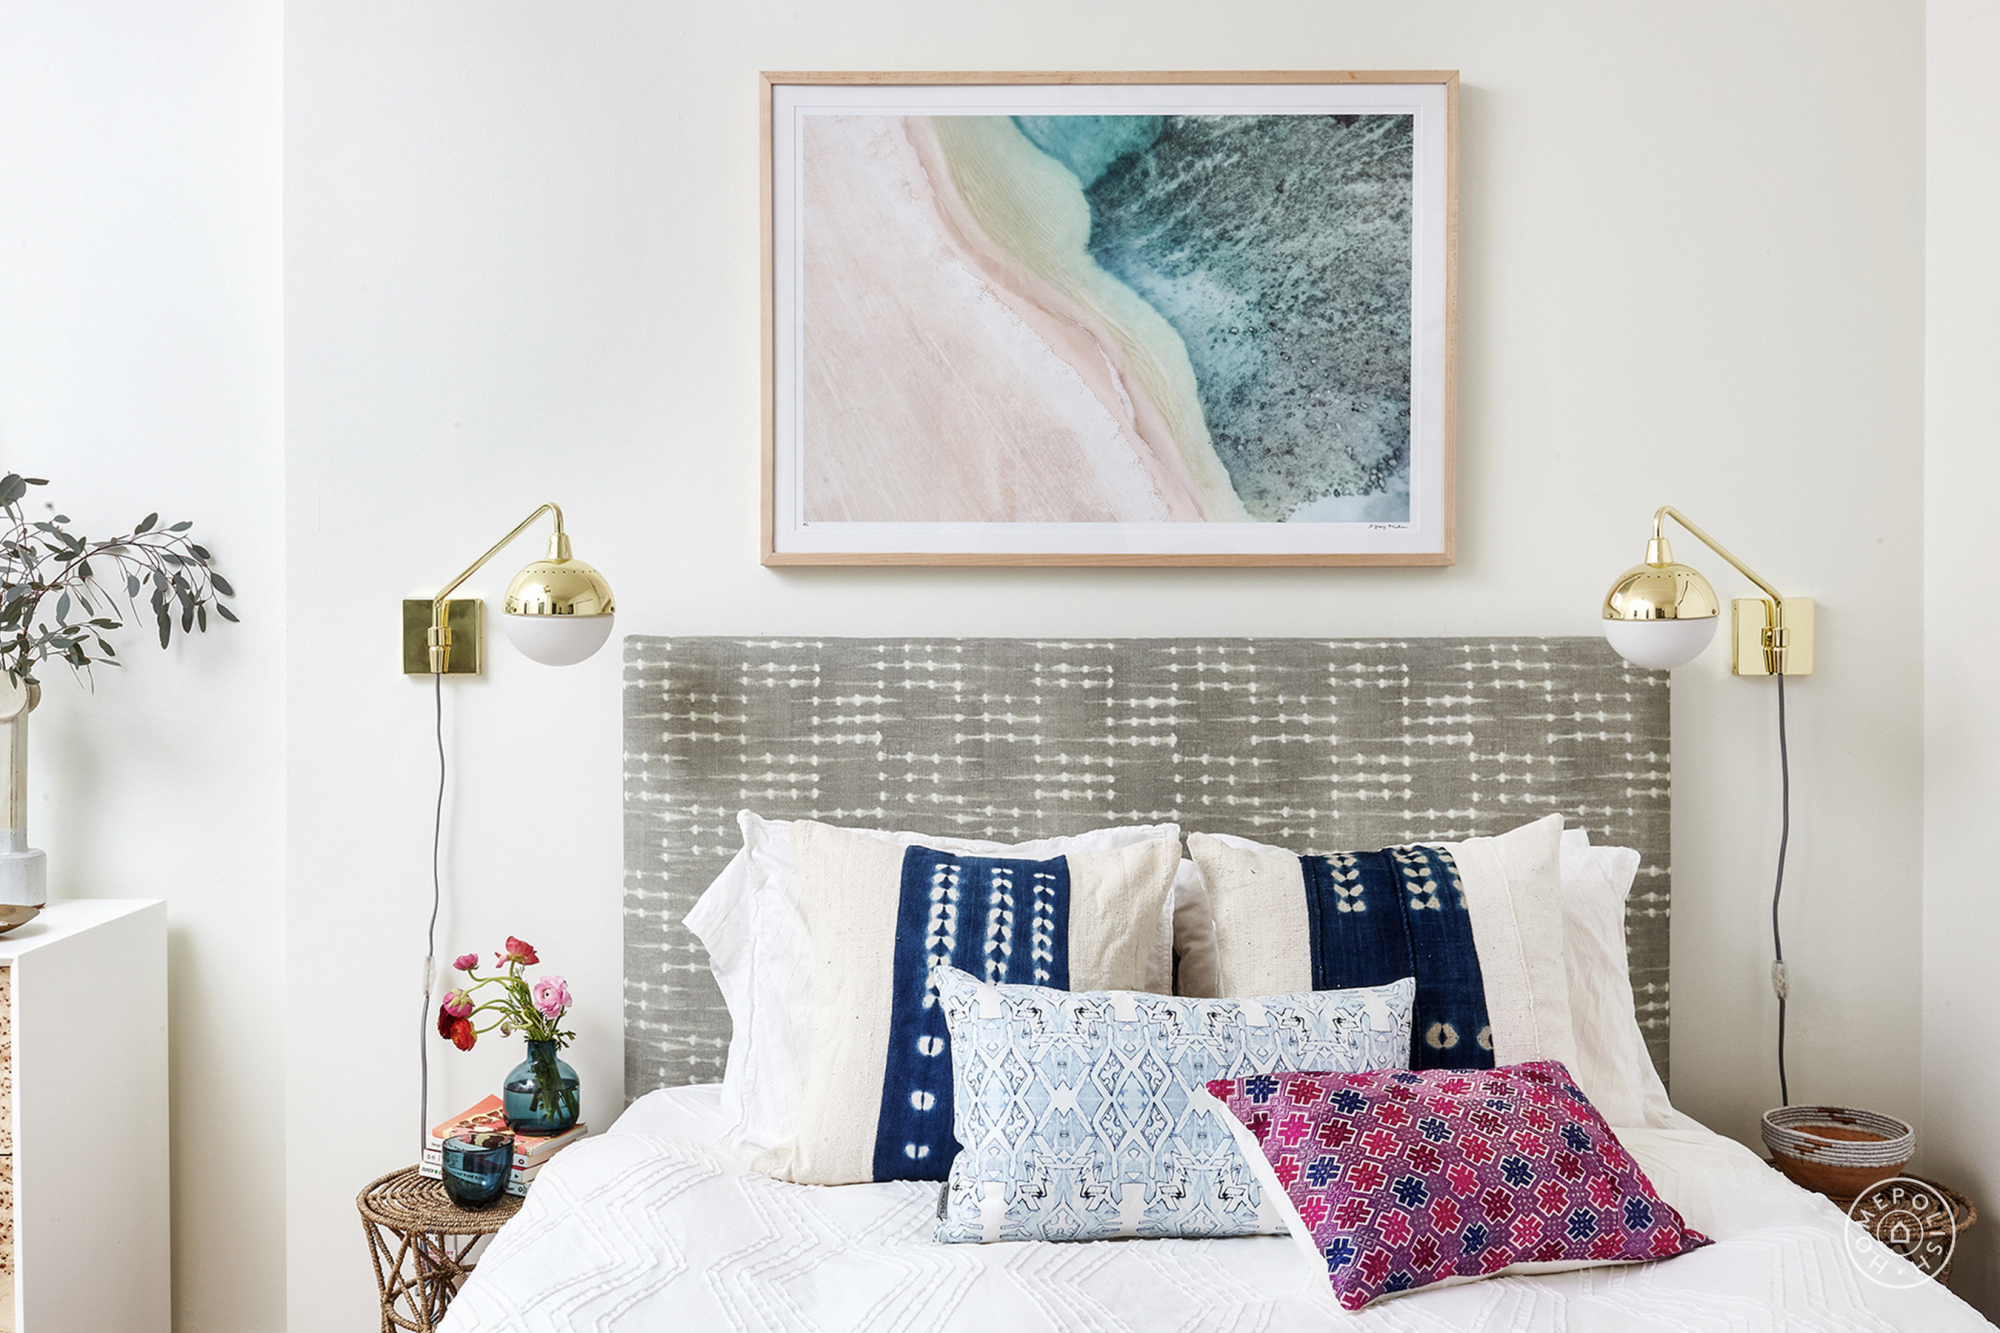 10 pinterest accounts to follow for interior design inspiration gray malin